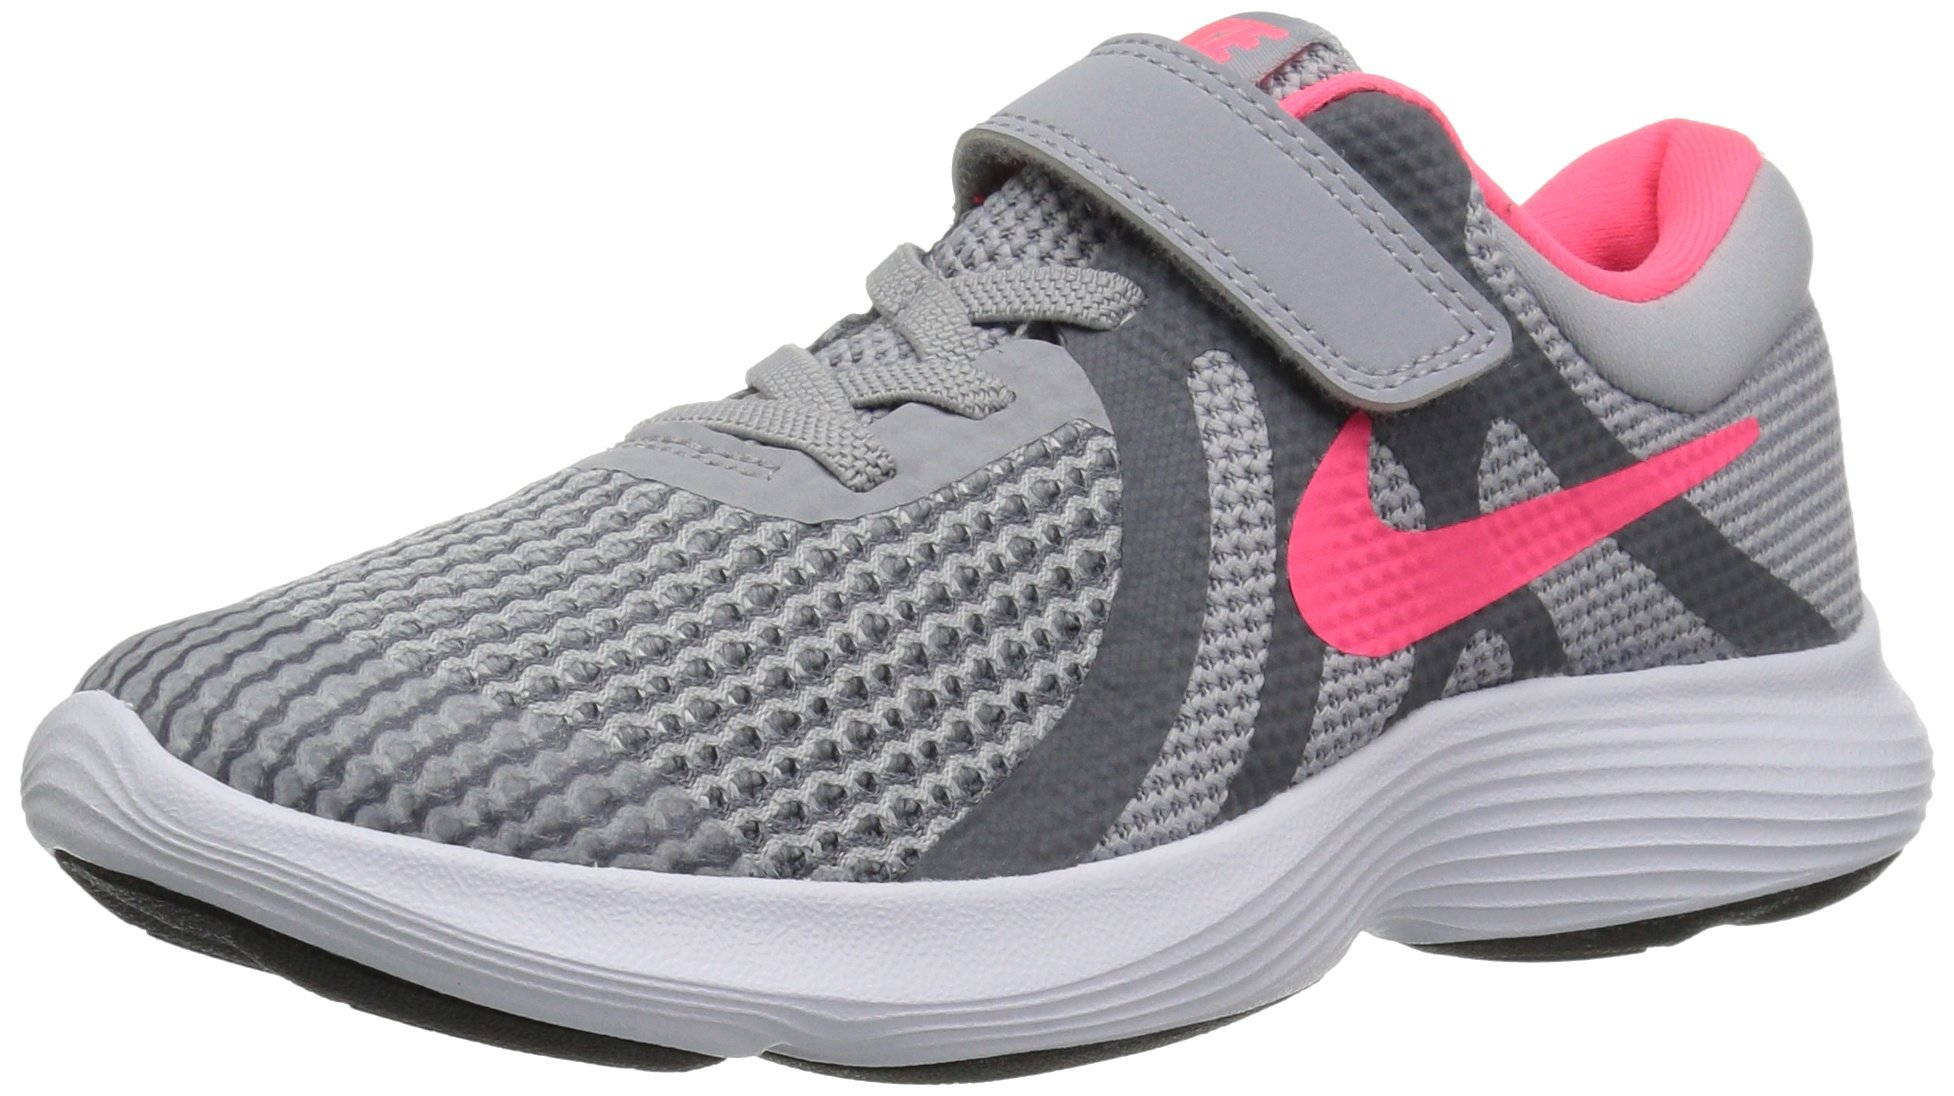 NIKE Girls Revolution 4 (PSV) Running Shoe, Wolf Racer Pink-Cool Grey-White, 3Y Child US Little Kid